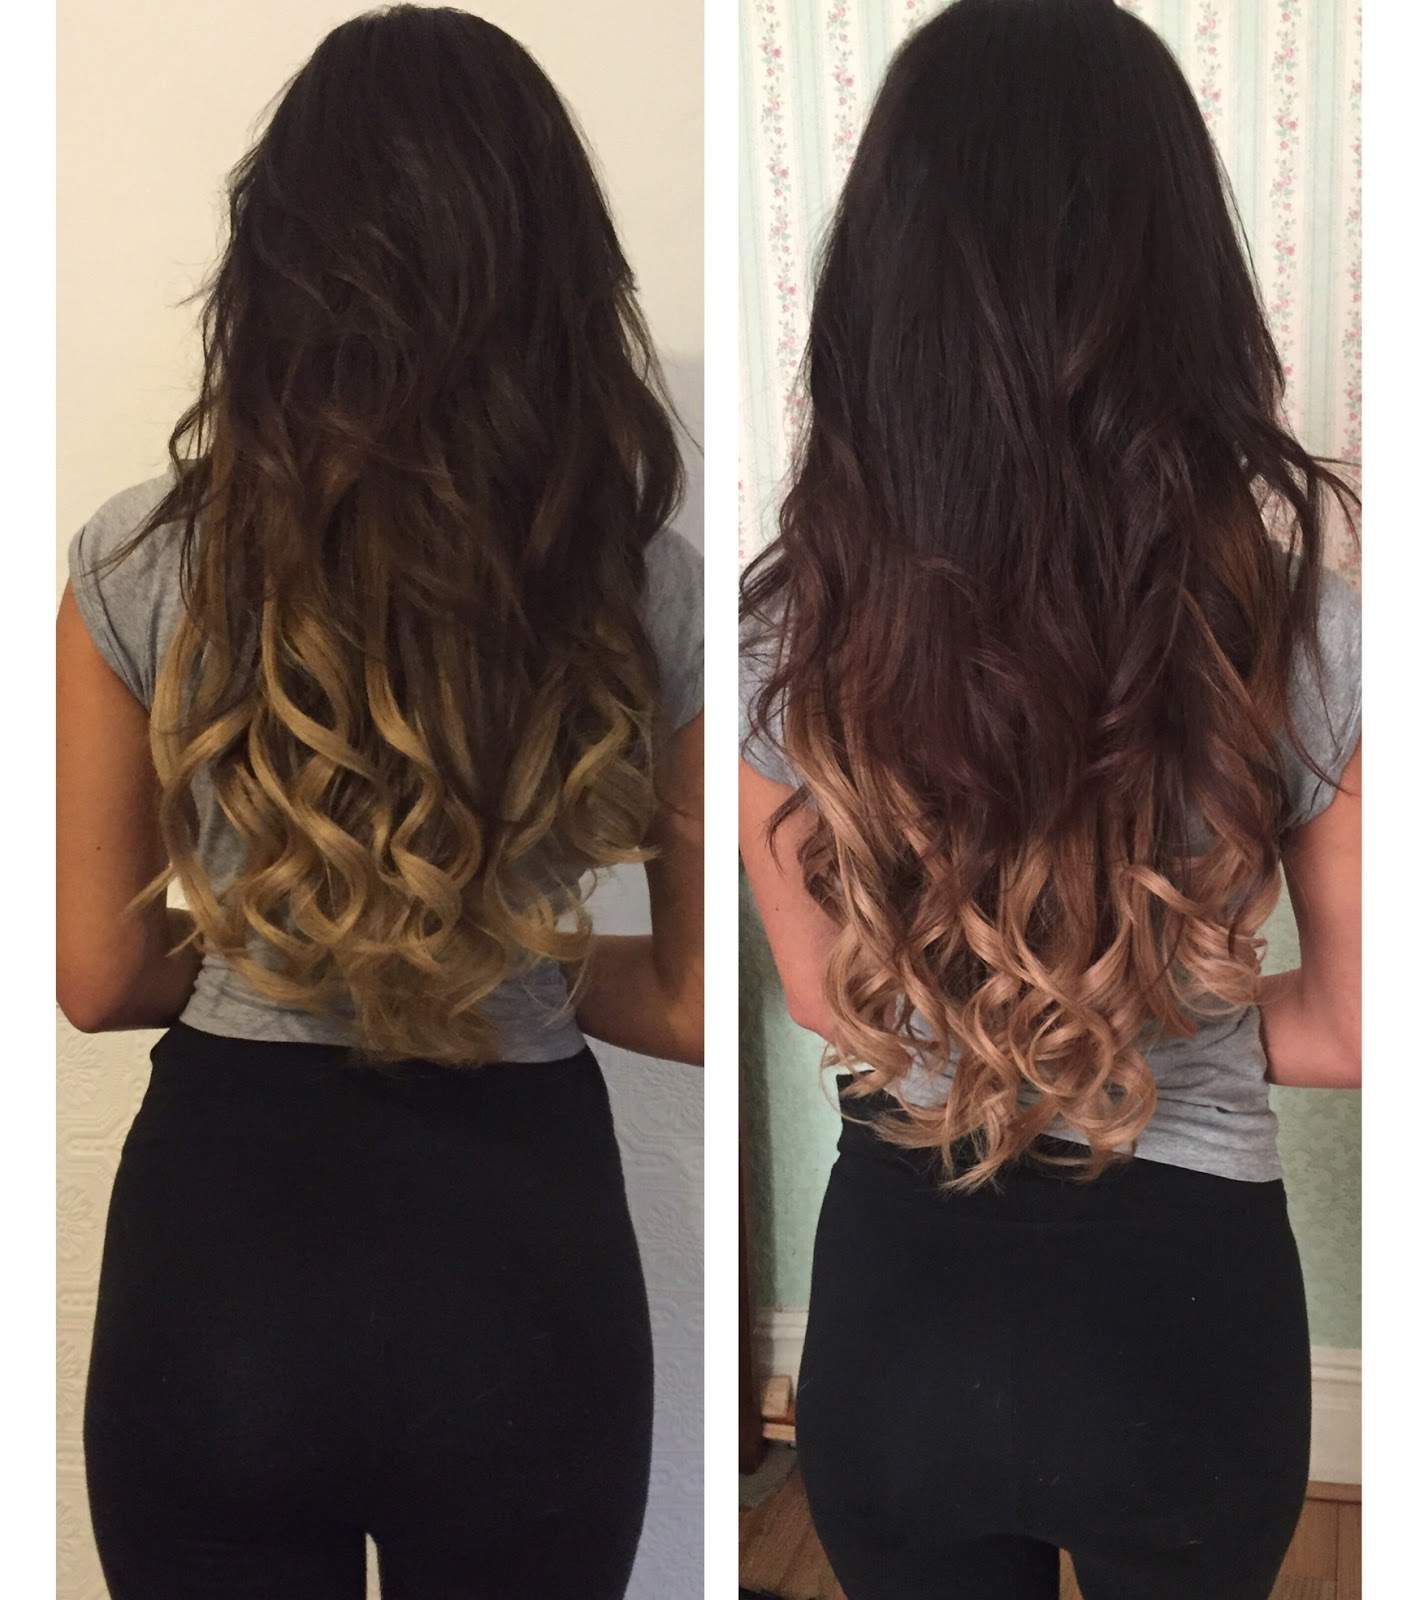 Makeup by Jasmine: Dirty Looks Oh My Ombre Hair Extensions ...